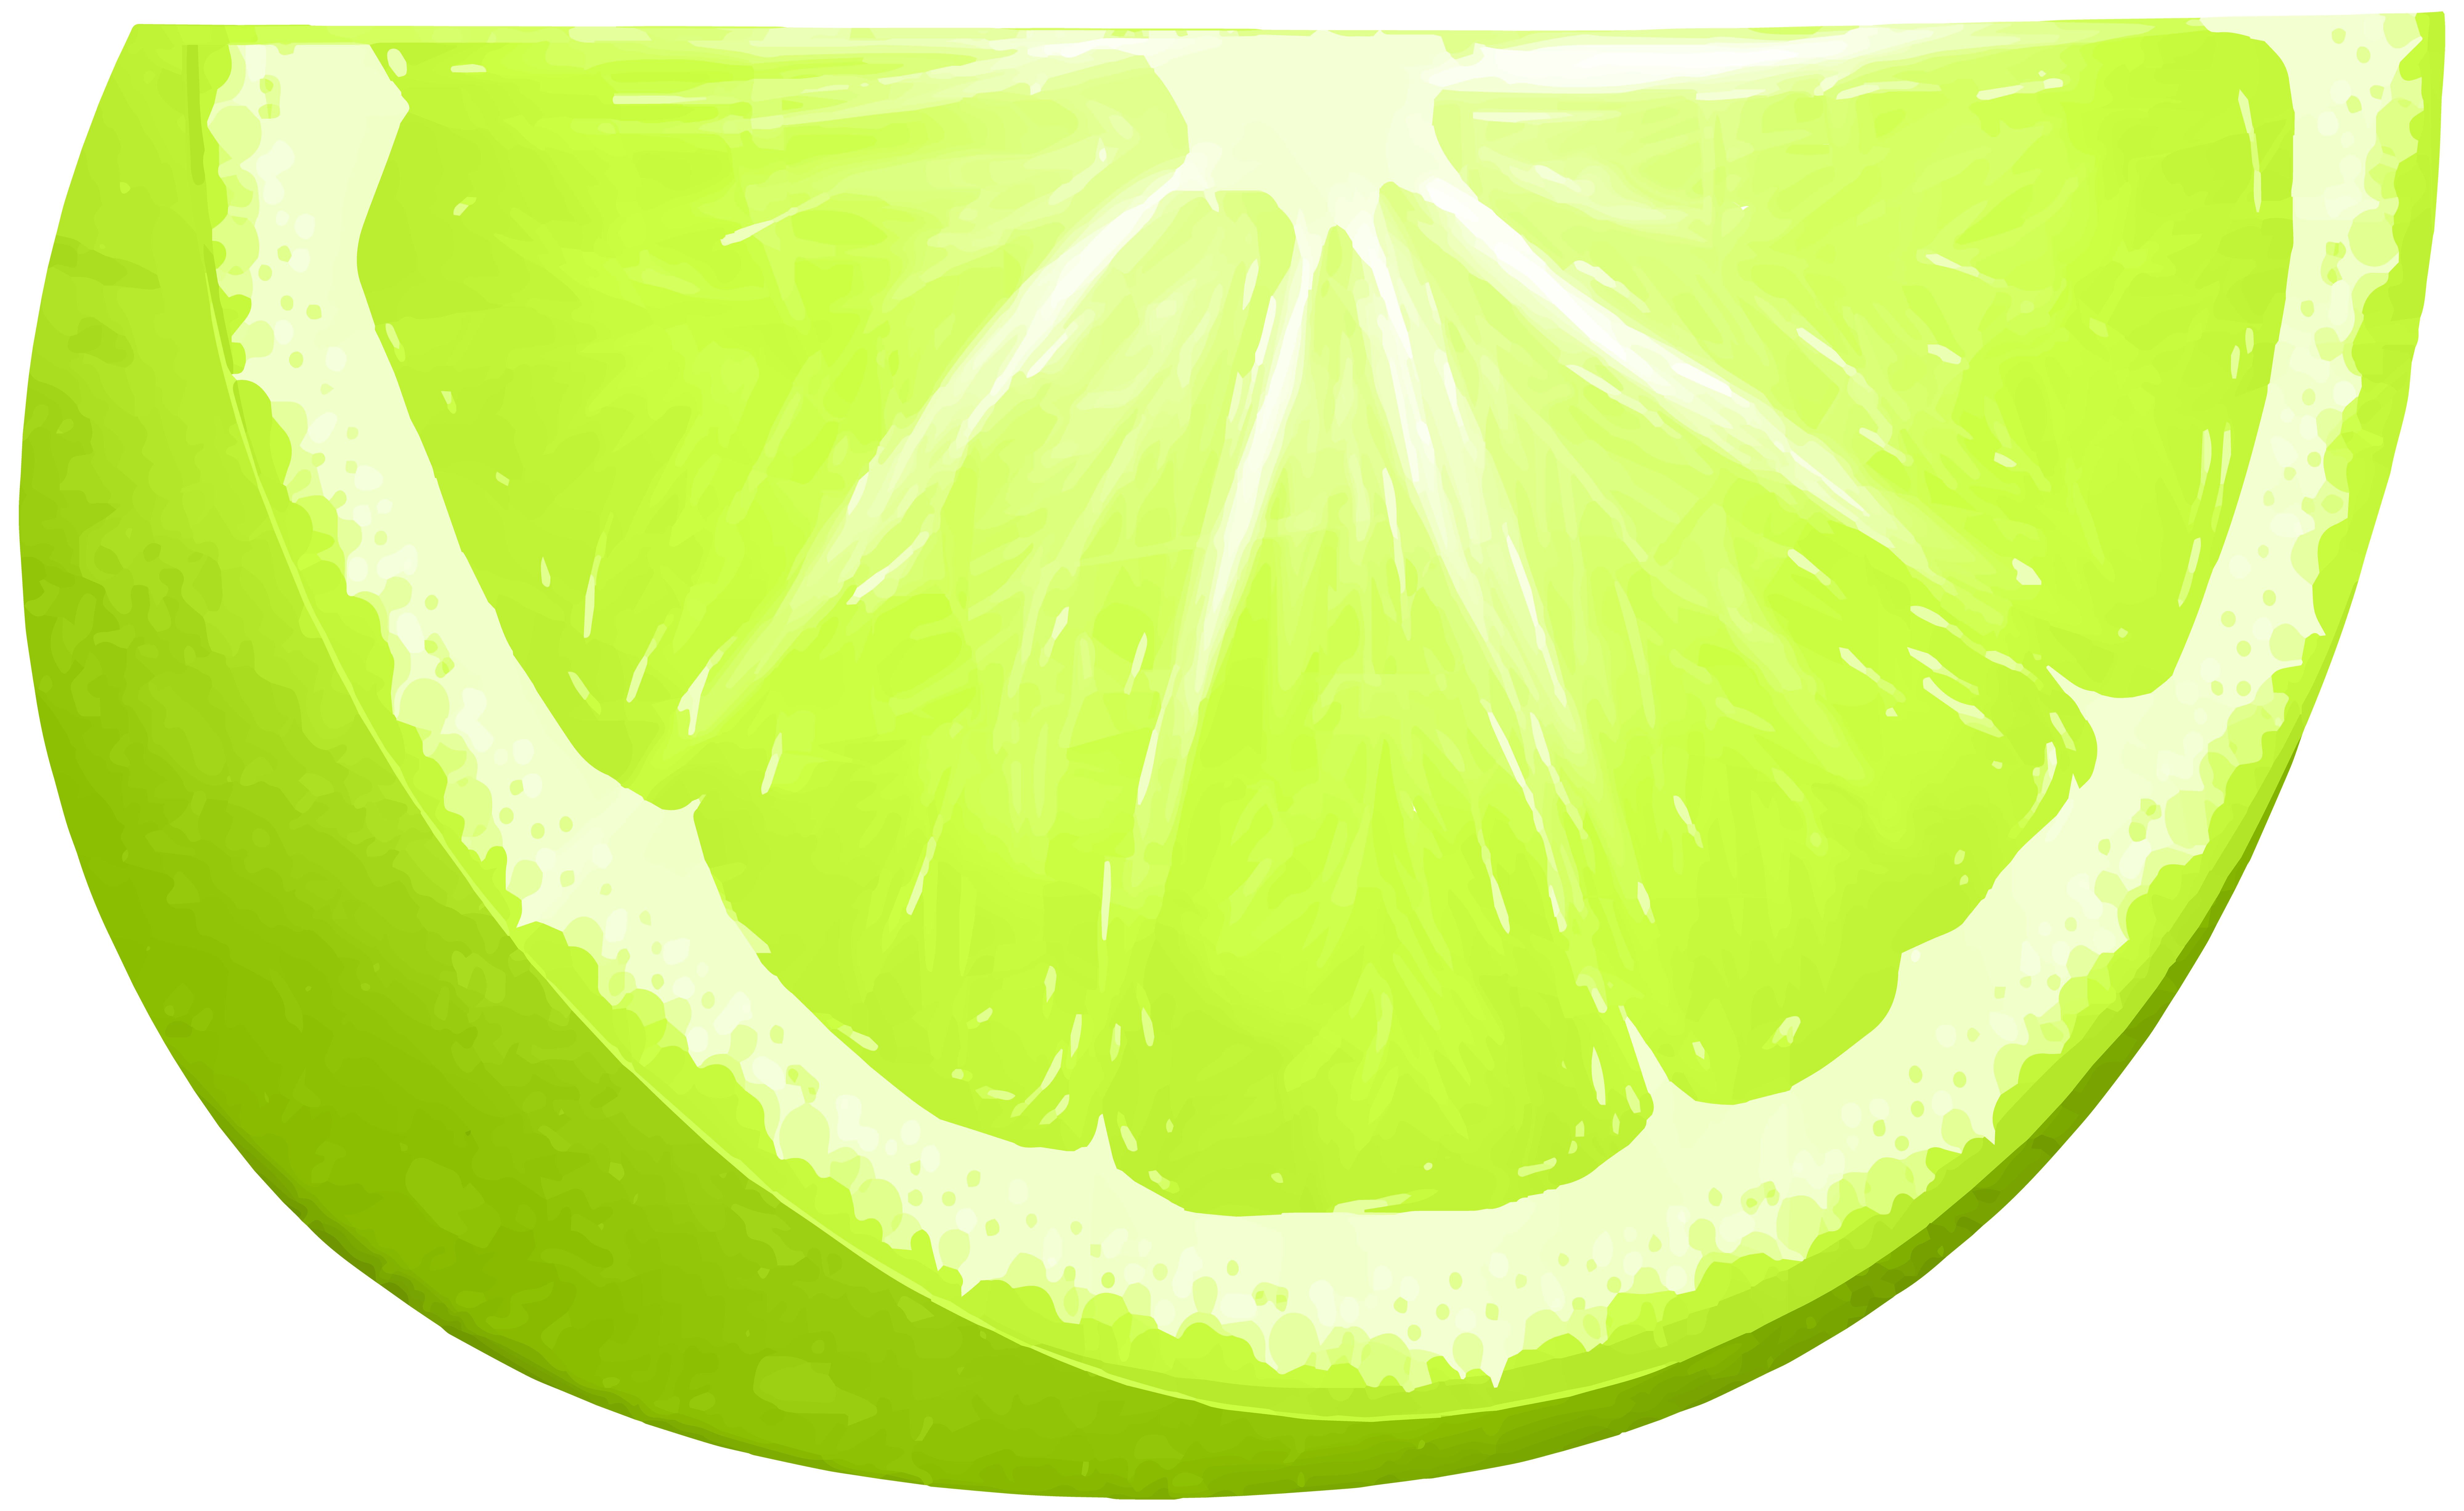 Png clip art image. Lime clipart lime slice